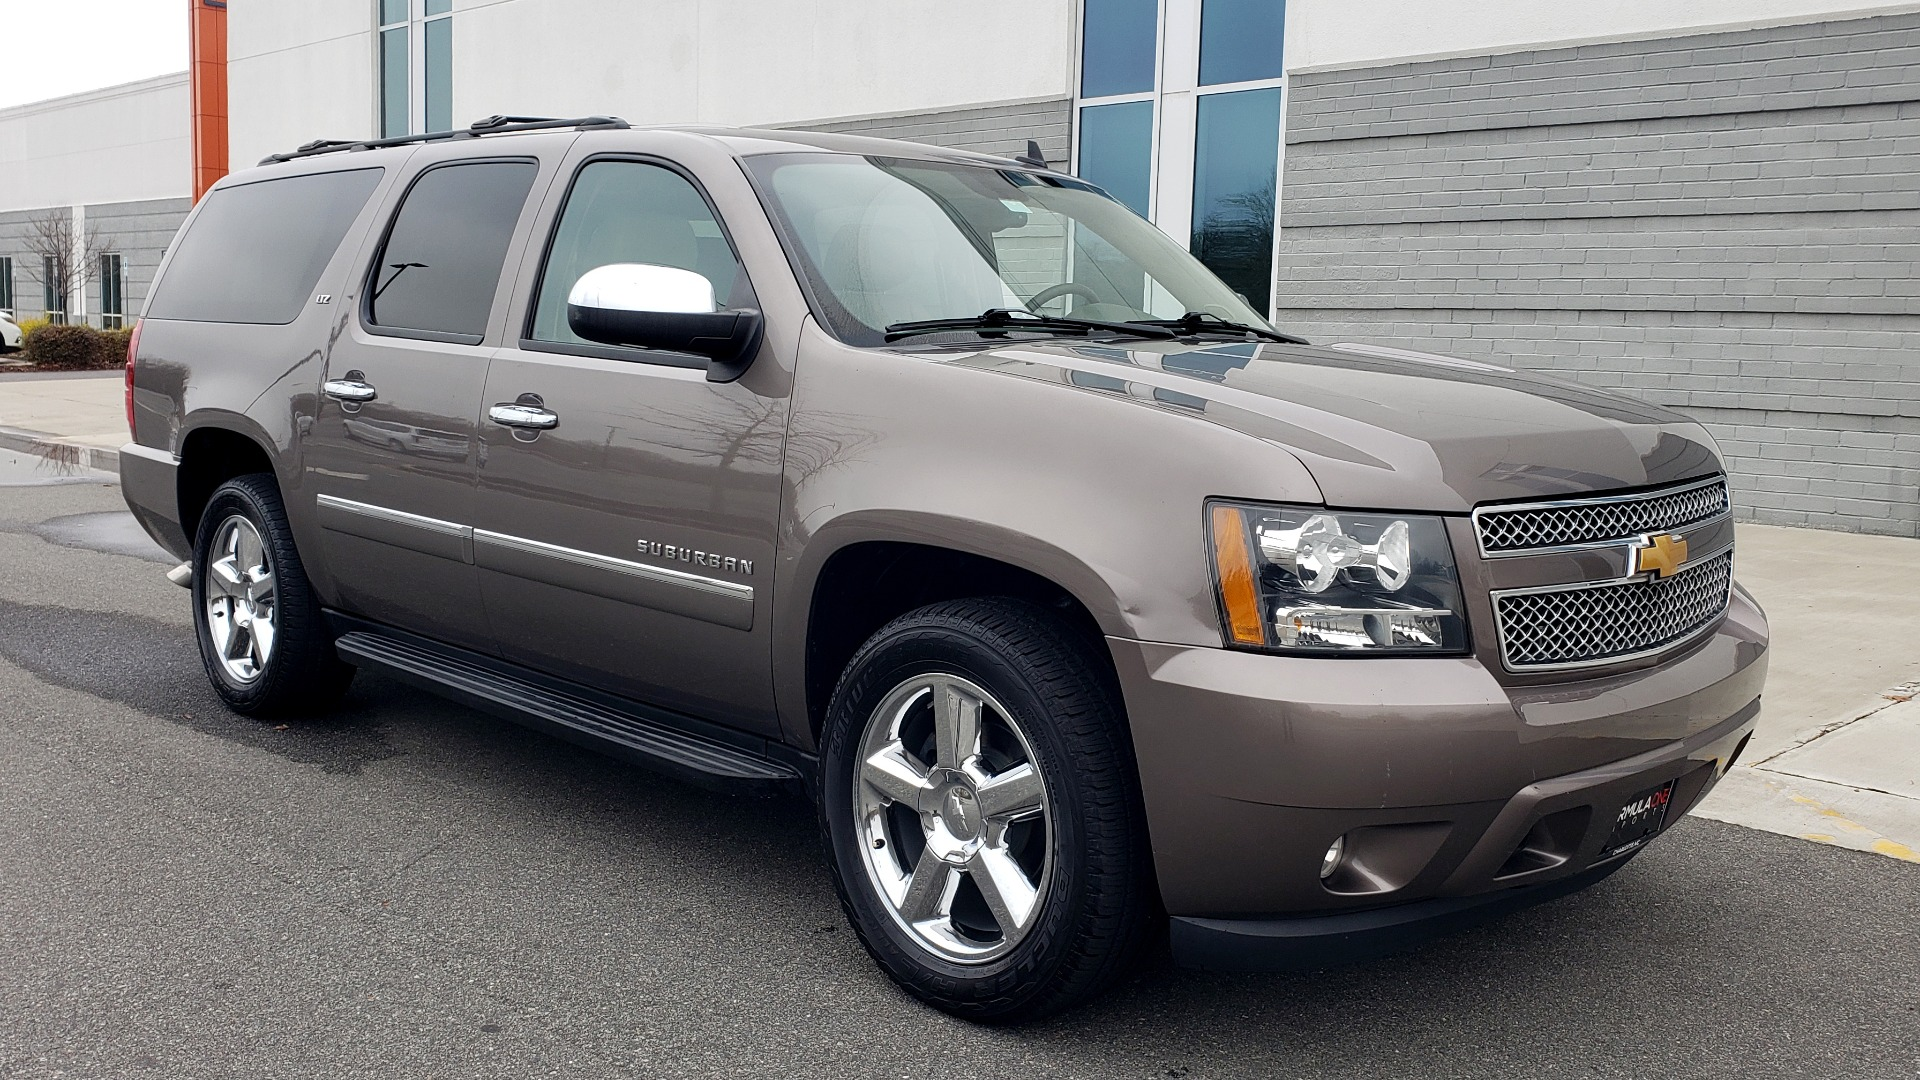 Used 2014 Chevrolet SUBURBAN LTZ / 4WD / ENTERTAINMENT / NAV / SUNROOF / TRAILER PKG for sale Sold at Formula Imports in Charlotte NC 28227 7